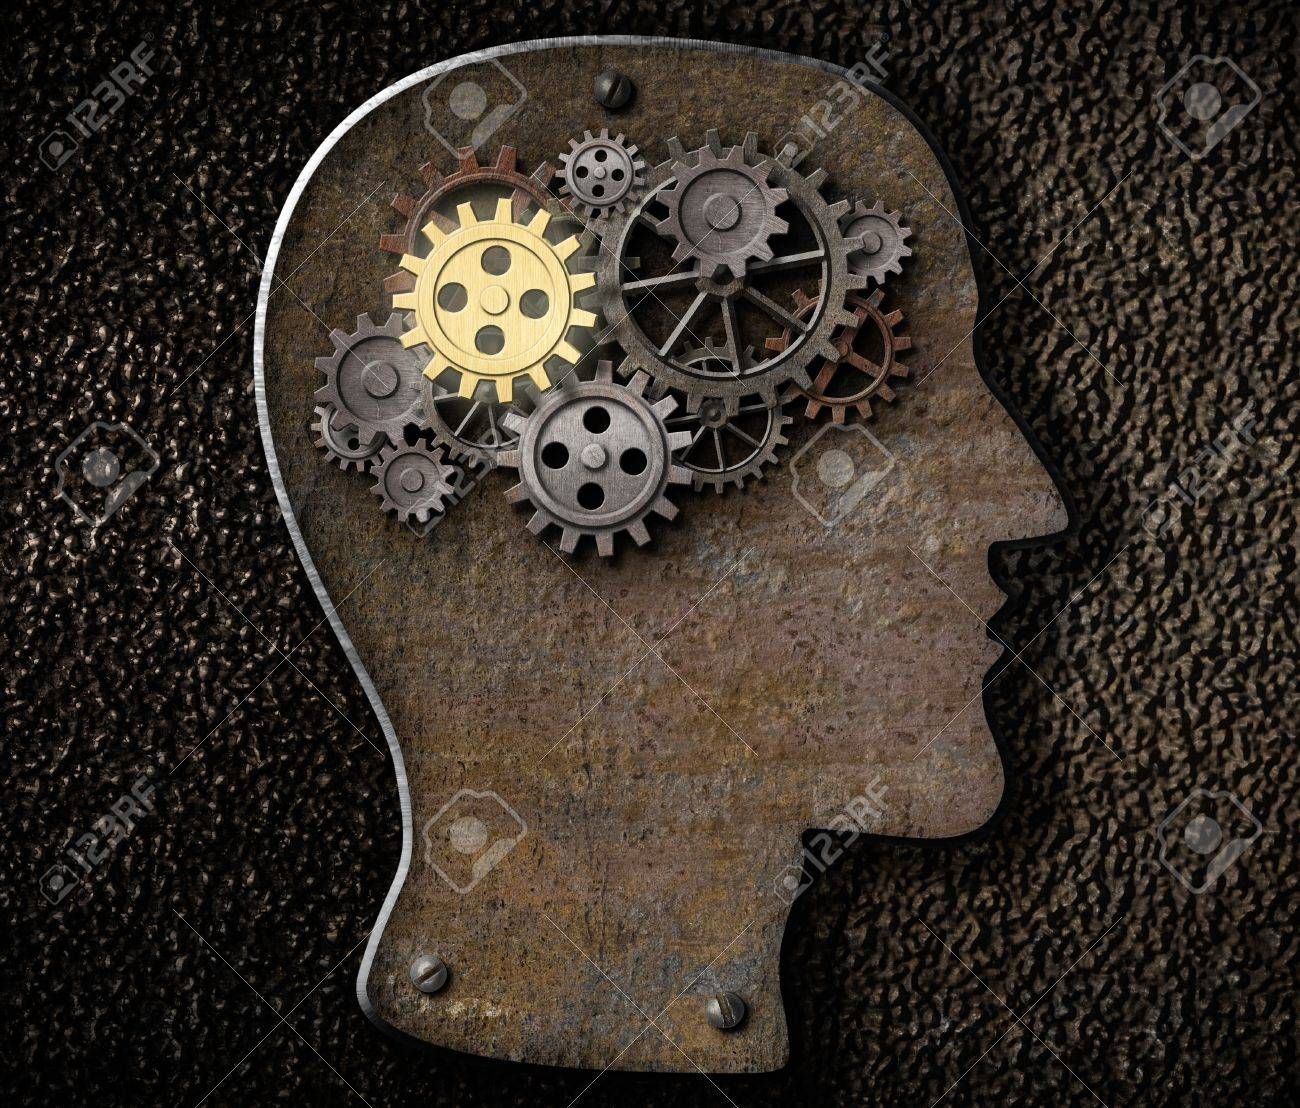 Brain mechanism gears and cogs made from rusty metal Stock Photo - 21151637